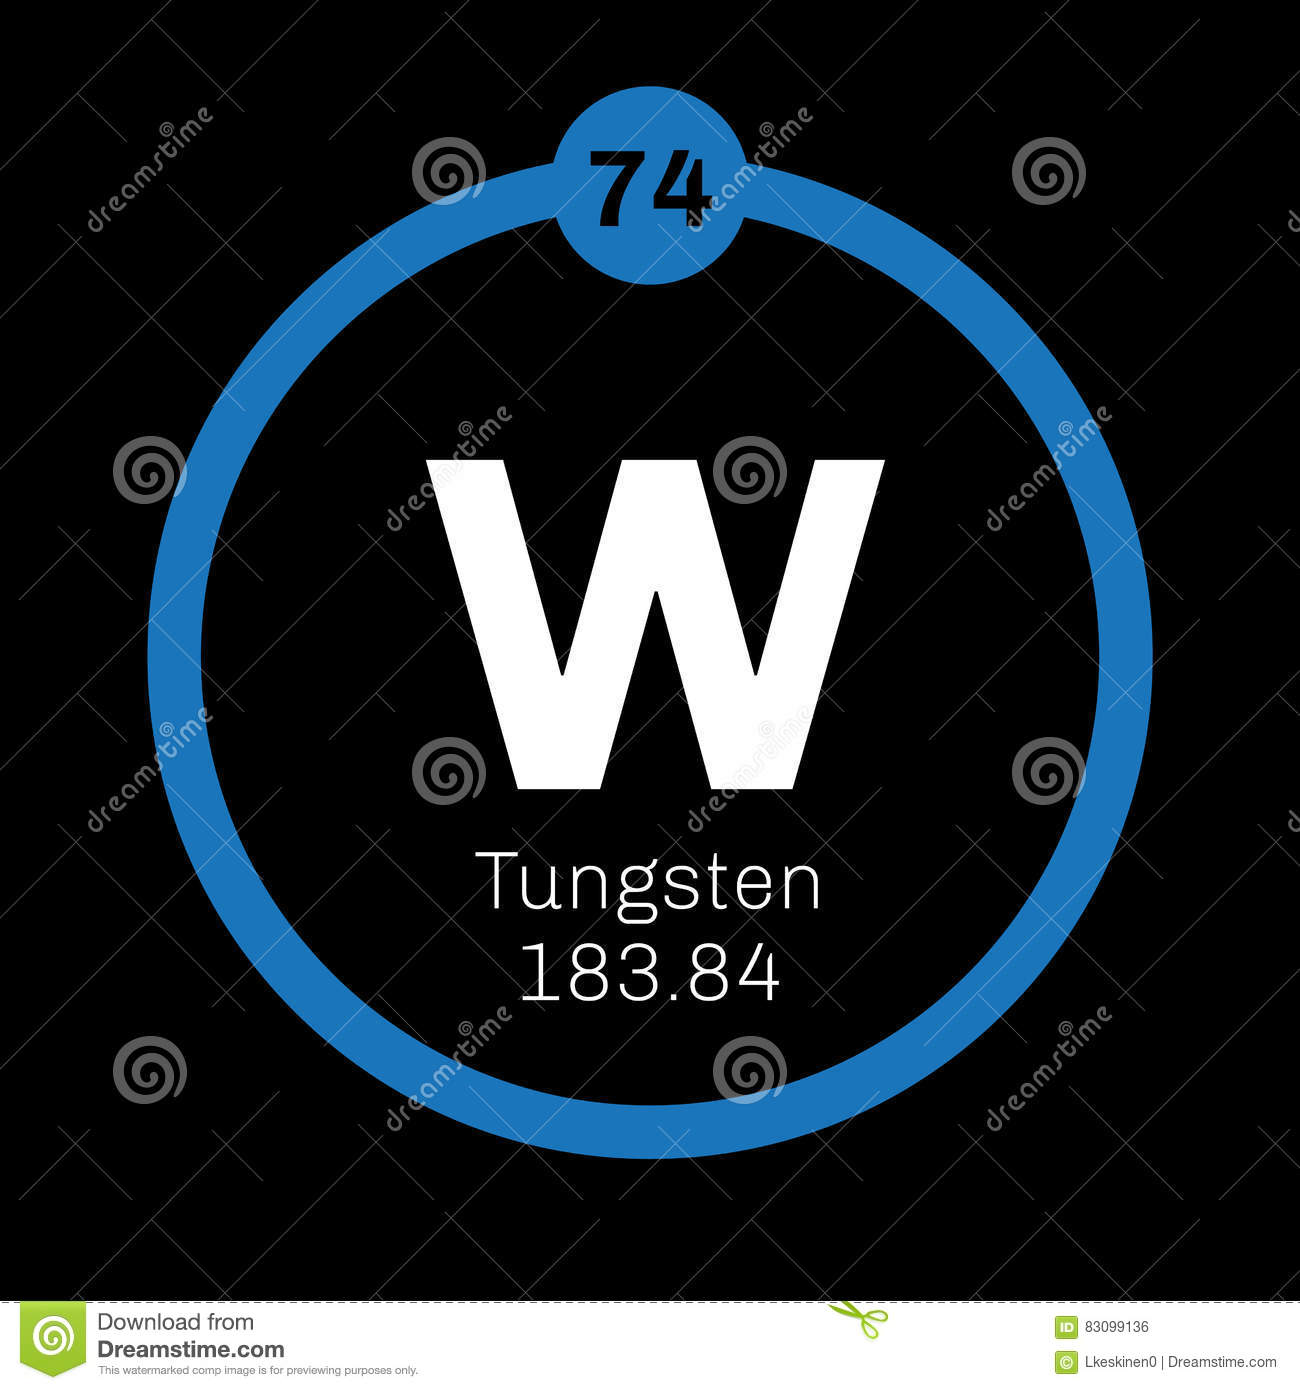 Tungsten Chemical Element Stock Vector Illustration Of Electron